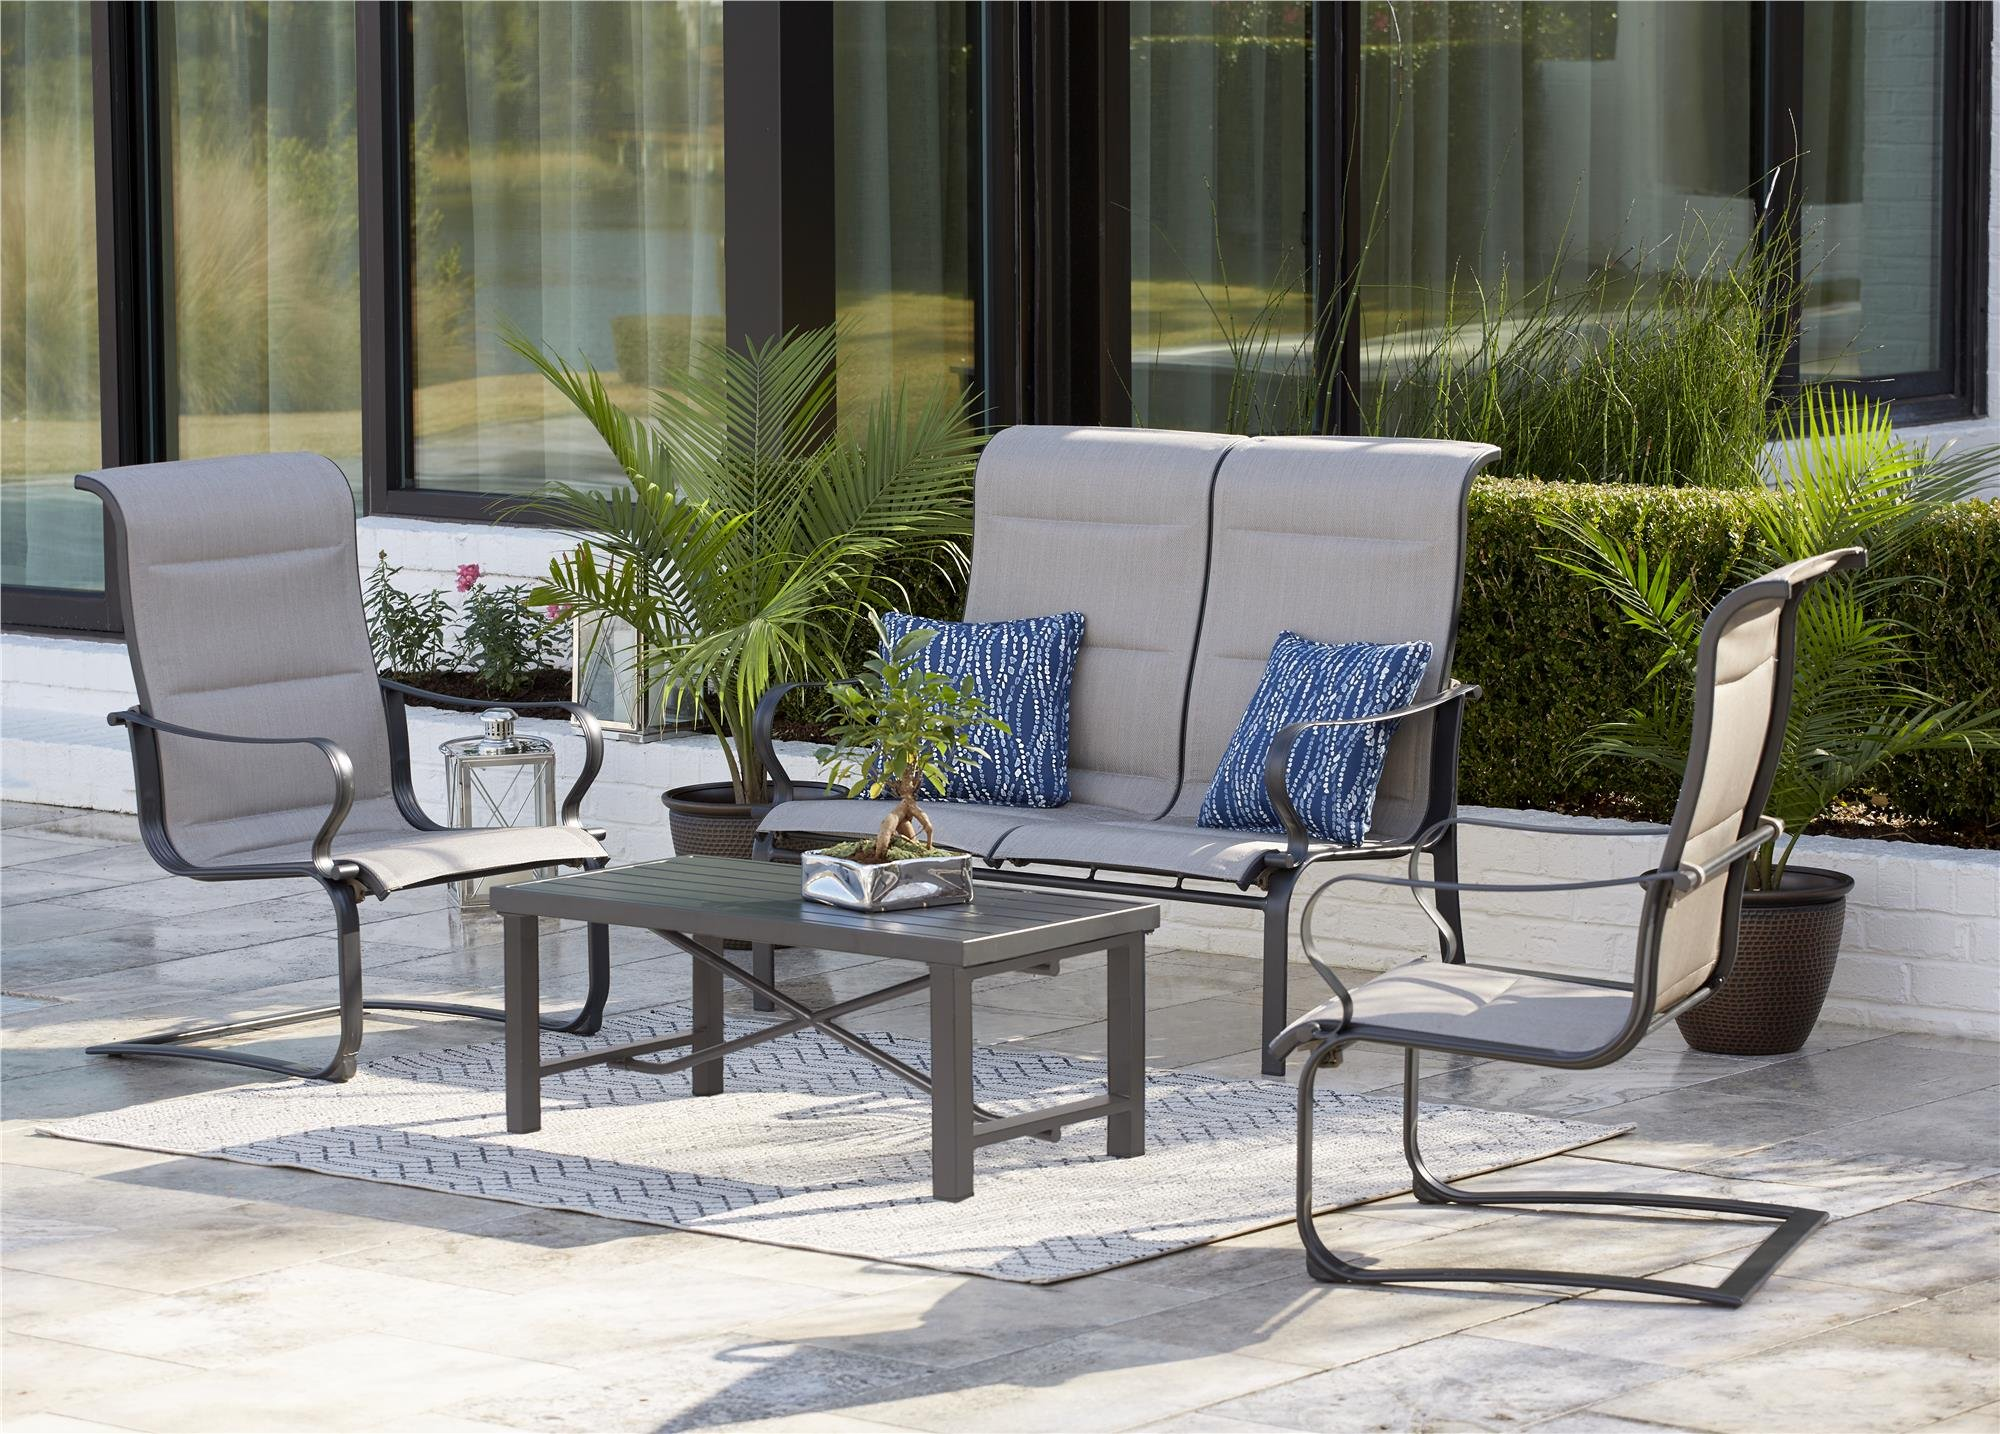 "Cosco Outdoor Patio Chairs, SmartConnect, 2 Pack, Gray Beige - Cosco's SmartConnect outdoor furniture collection features easy, tool-free assembly, from carton to comfort in minutes! Stylish outdoor furniture set has a durable, weather resistant outdoor powder coated steel frame, chairs and loveseat have easy to clean all weather slings Dimensions are: Outdoor lounge chair 29.92"" L x 26.57"" D x 40.94"" H per chair, Loveseat 49.41"" L x 29.92"" D x 40.94"" H, Coffee table 39.96"" L x 19.69"" D x 15.75"" H - patio-furniture, patio-chairs, patio - 91Xpy4ug8PL -"